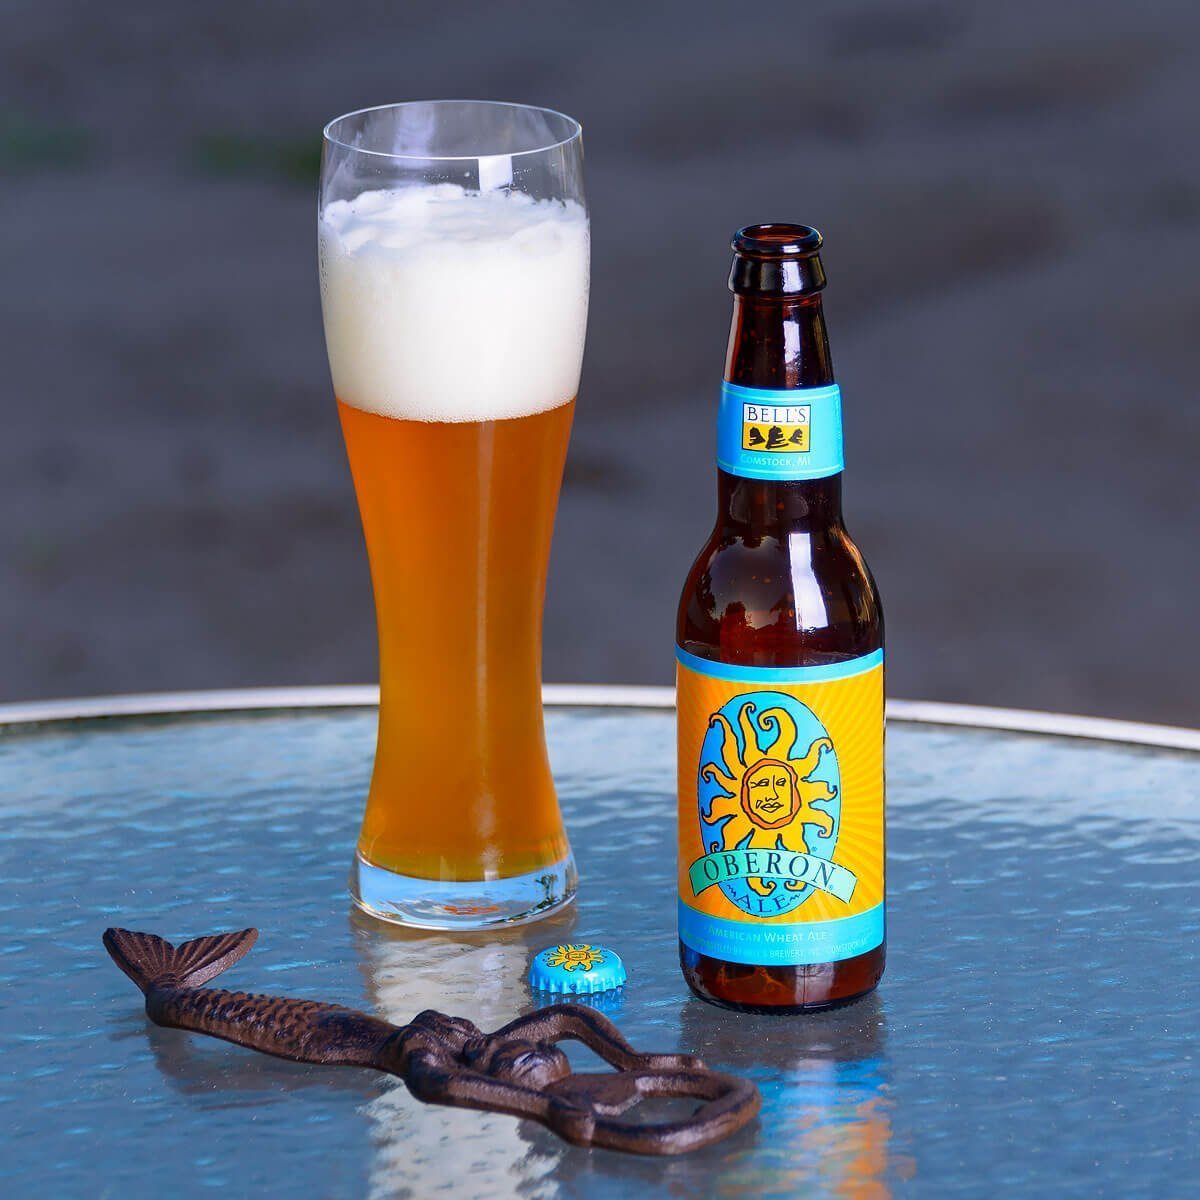 Oberon Ale is an American Wheat Ale by Bell's Brewery that blends doughy bread with spicy clove and pepper; refreshingly tart with lemon and orange.